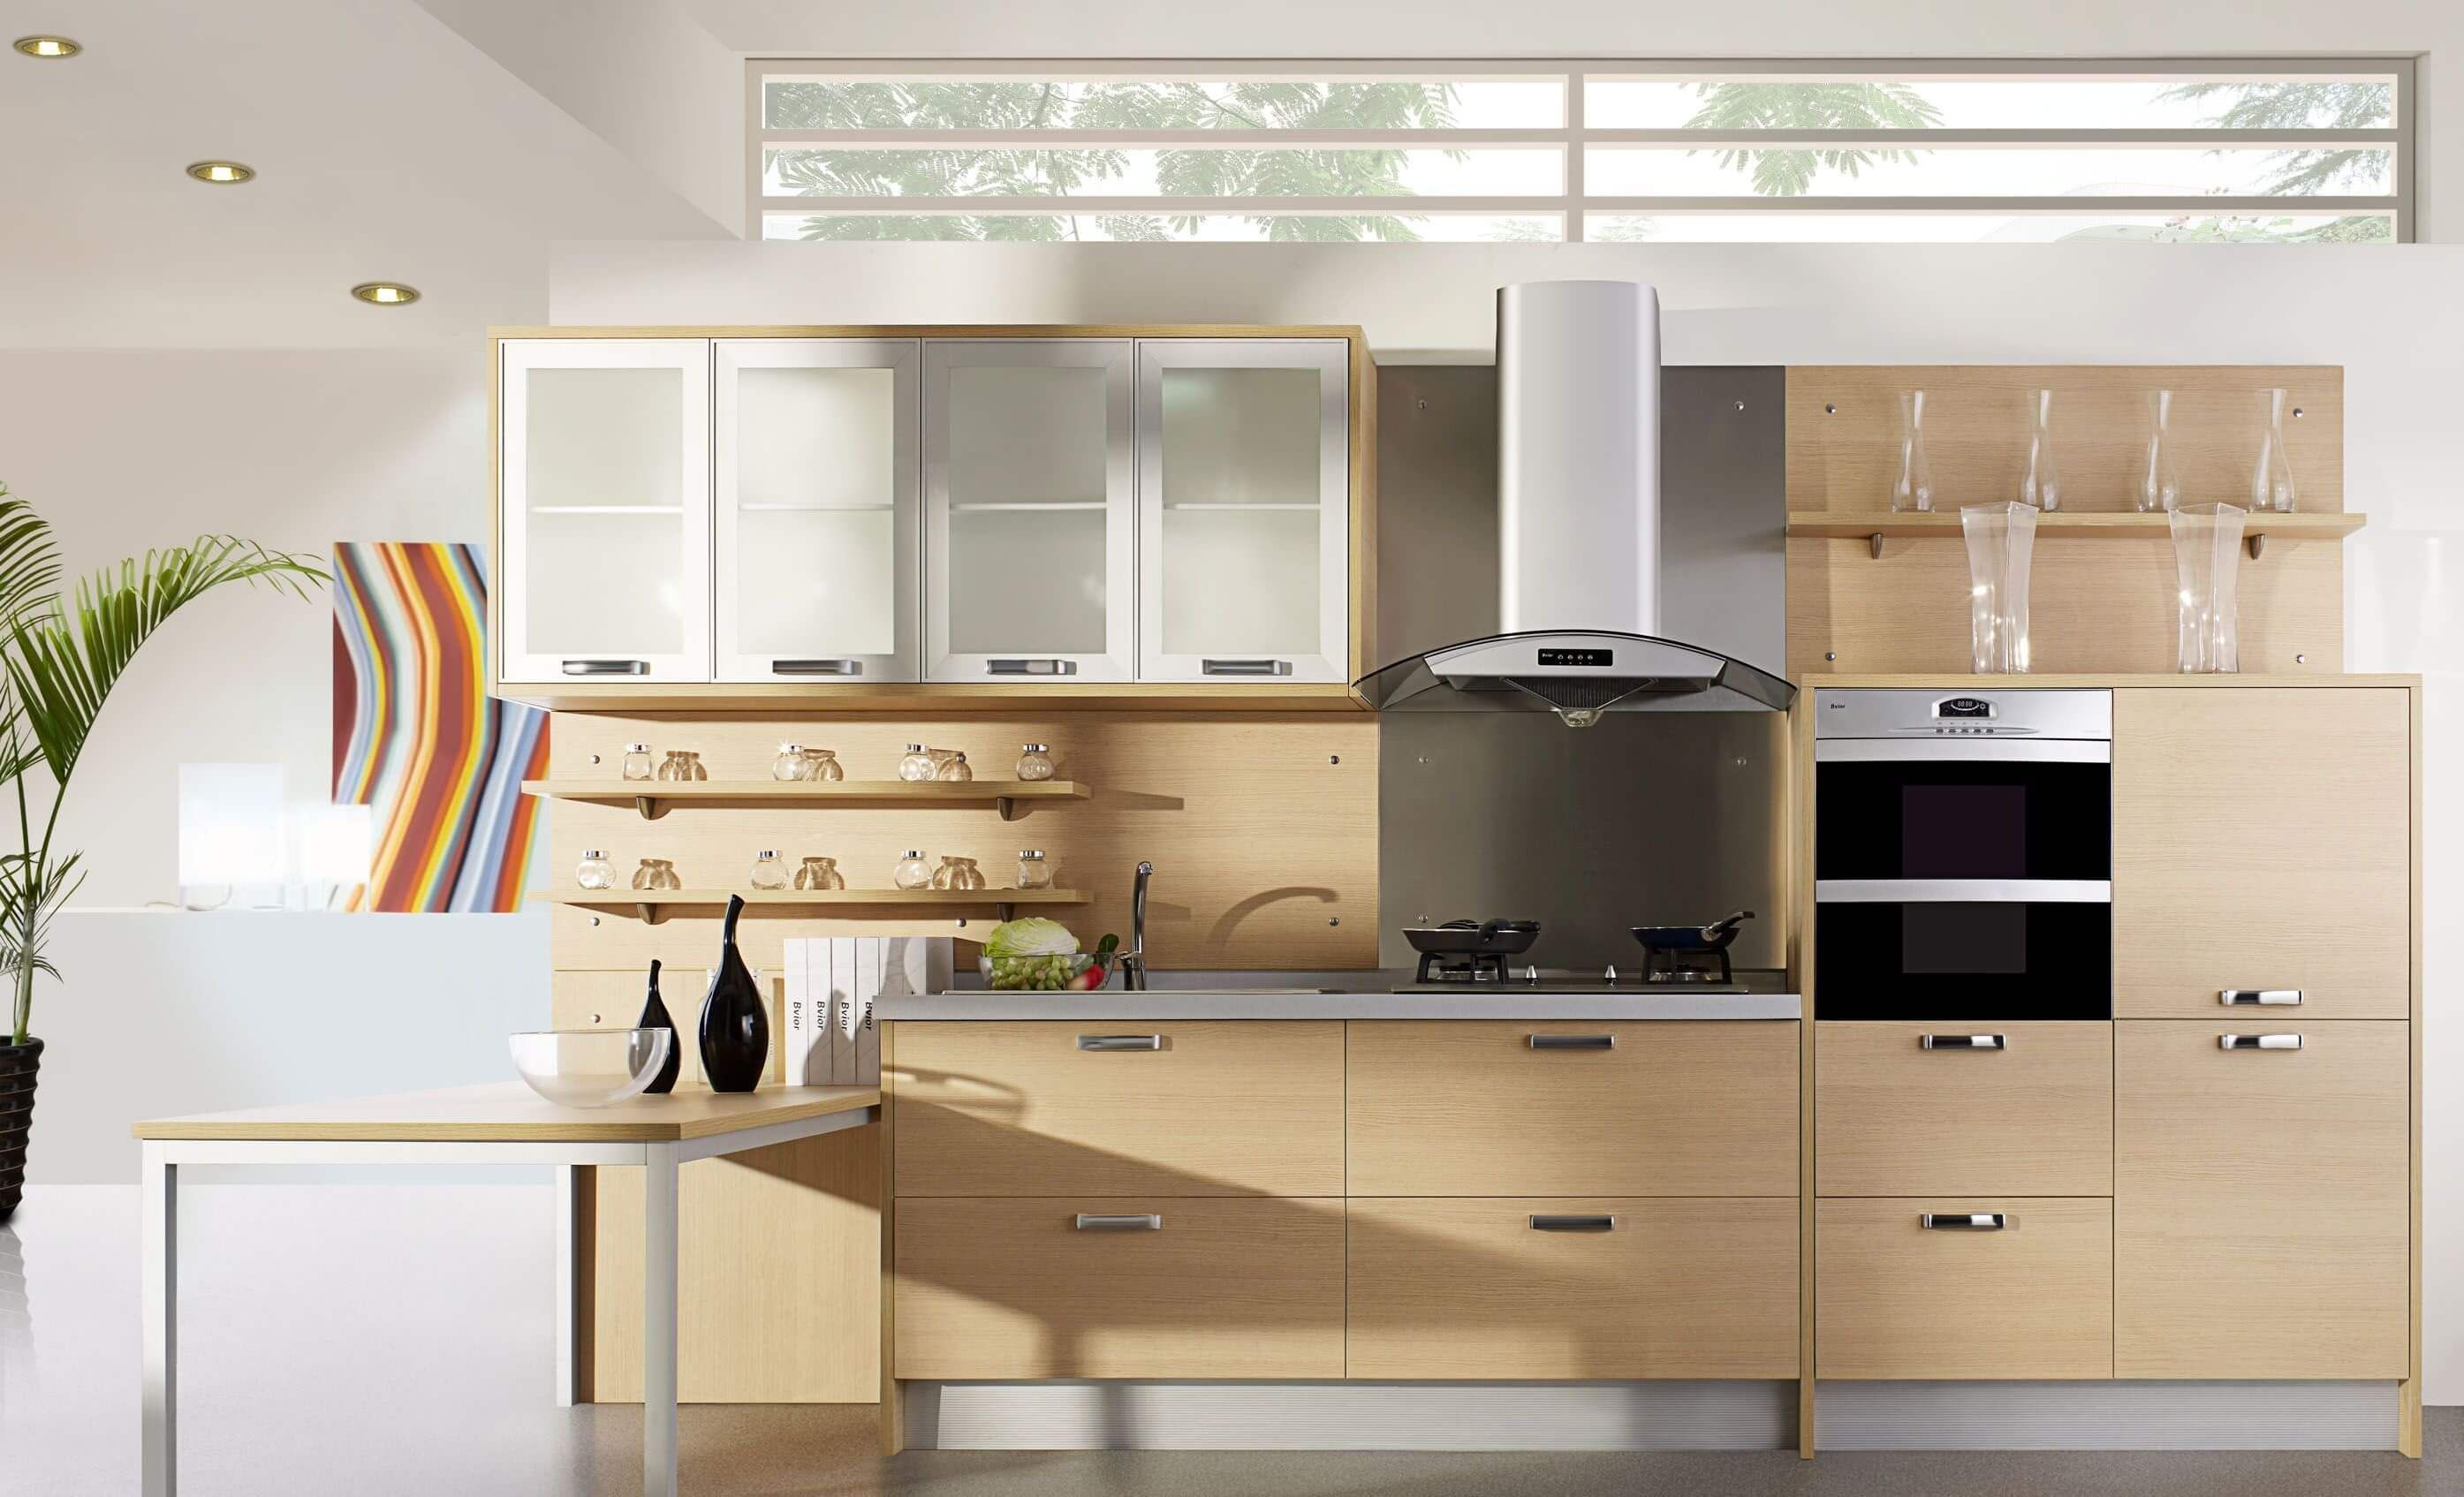 55+ Modular Kitchen Design Ideas For Indian Homes in 2020 ...